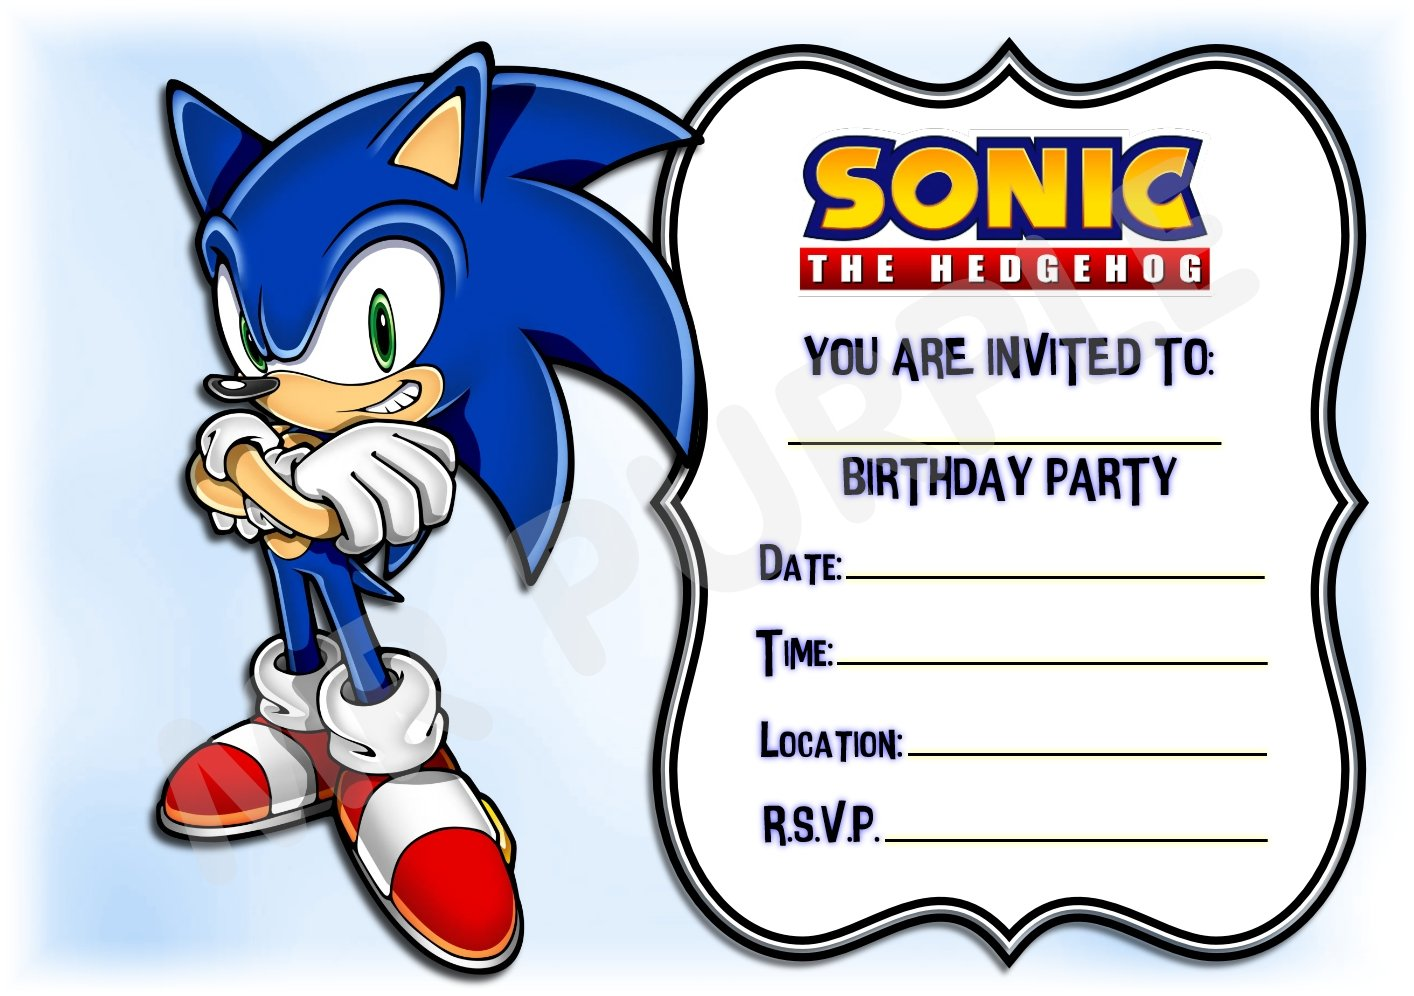 Sonic The Hedgehog Birthday Party Invites Landscape Frame Design Party Supplies Accessories Pack Of 12 A5 Invitations With Envelopes Buy Online In Chile Mrpurple Products In Chile